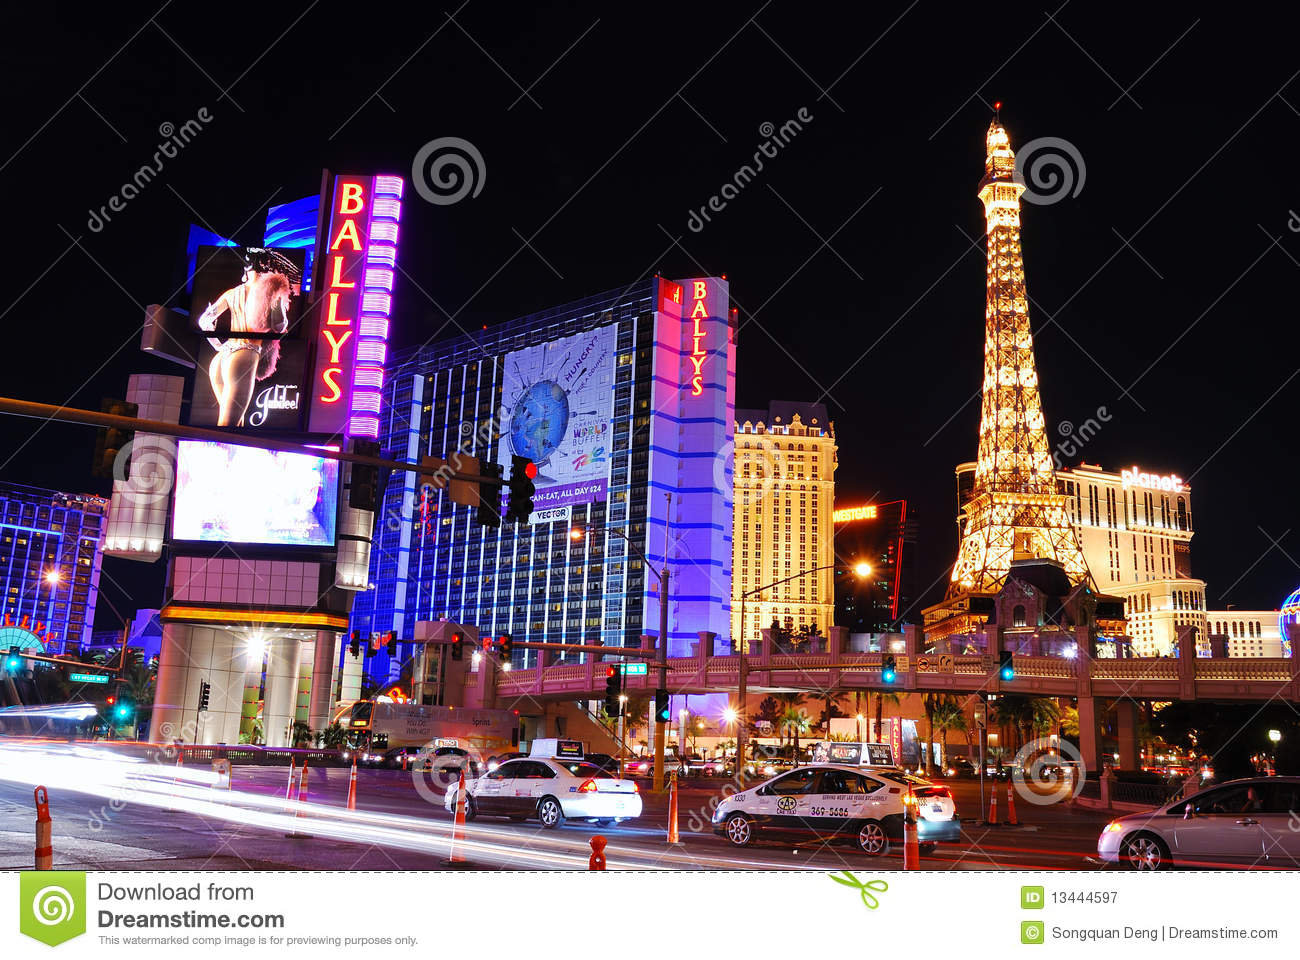 Las Vegas By Night Las Vegas De Noche As Vegas Pola: Strip Street Night Scene, Las Vegas Editorial Photography